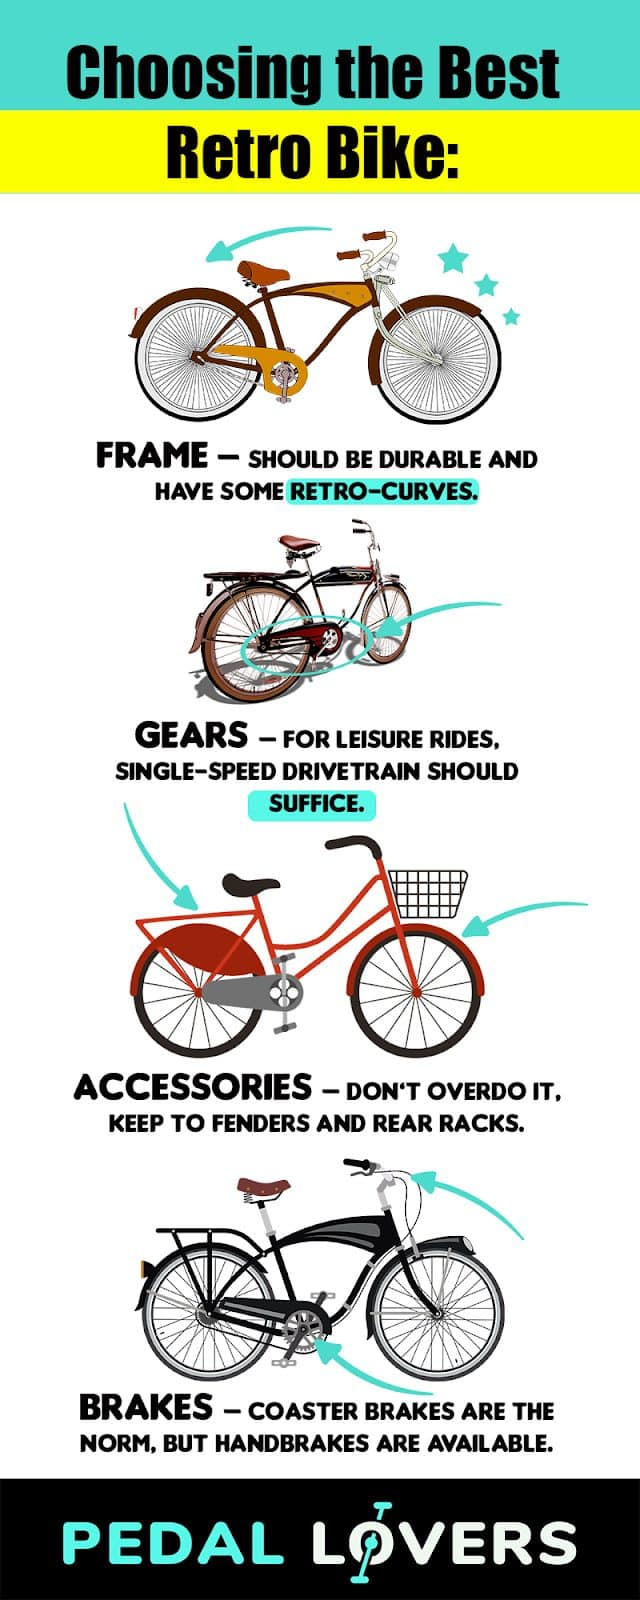 What is the best retro bike